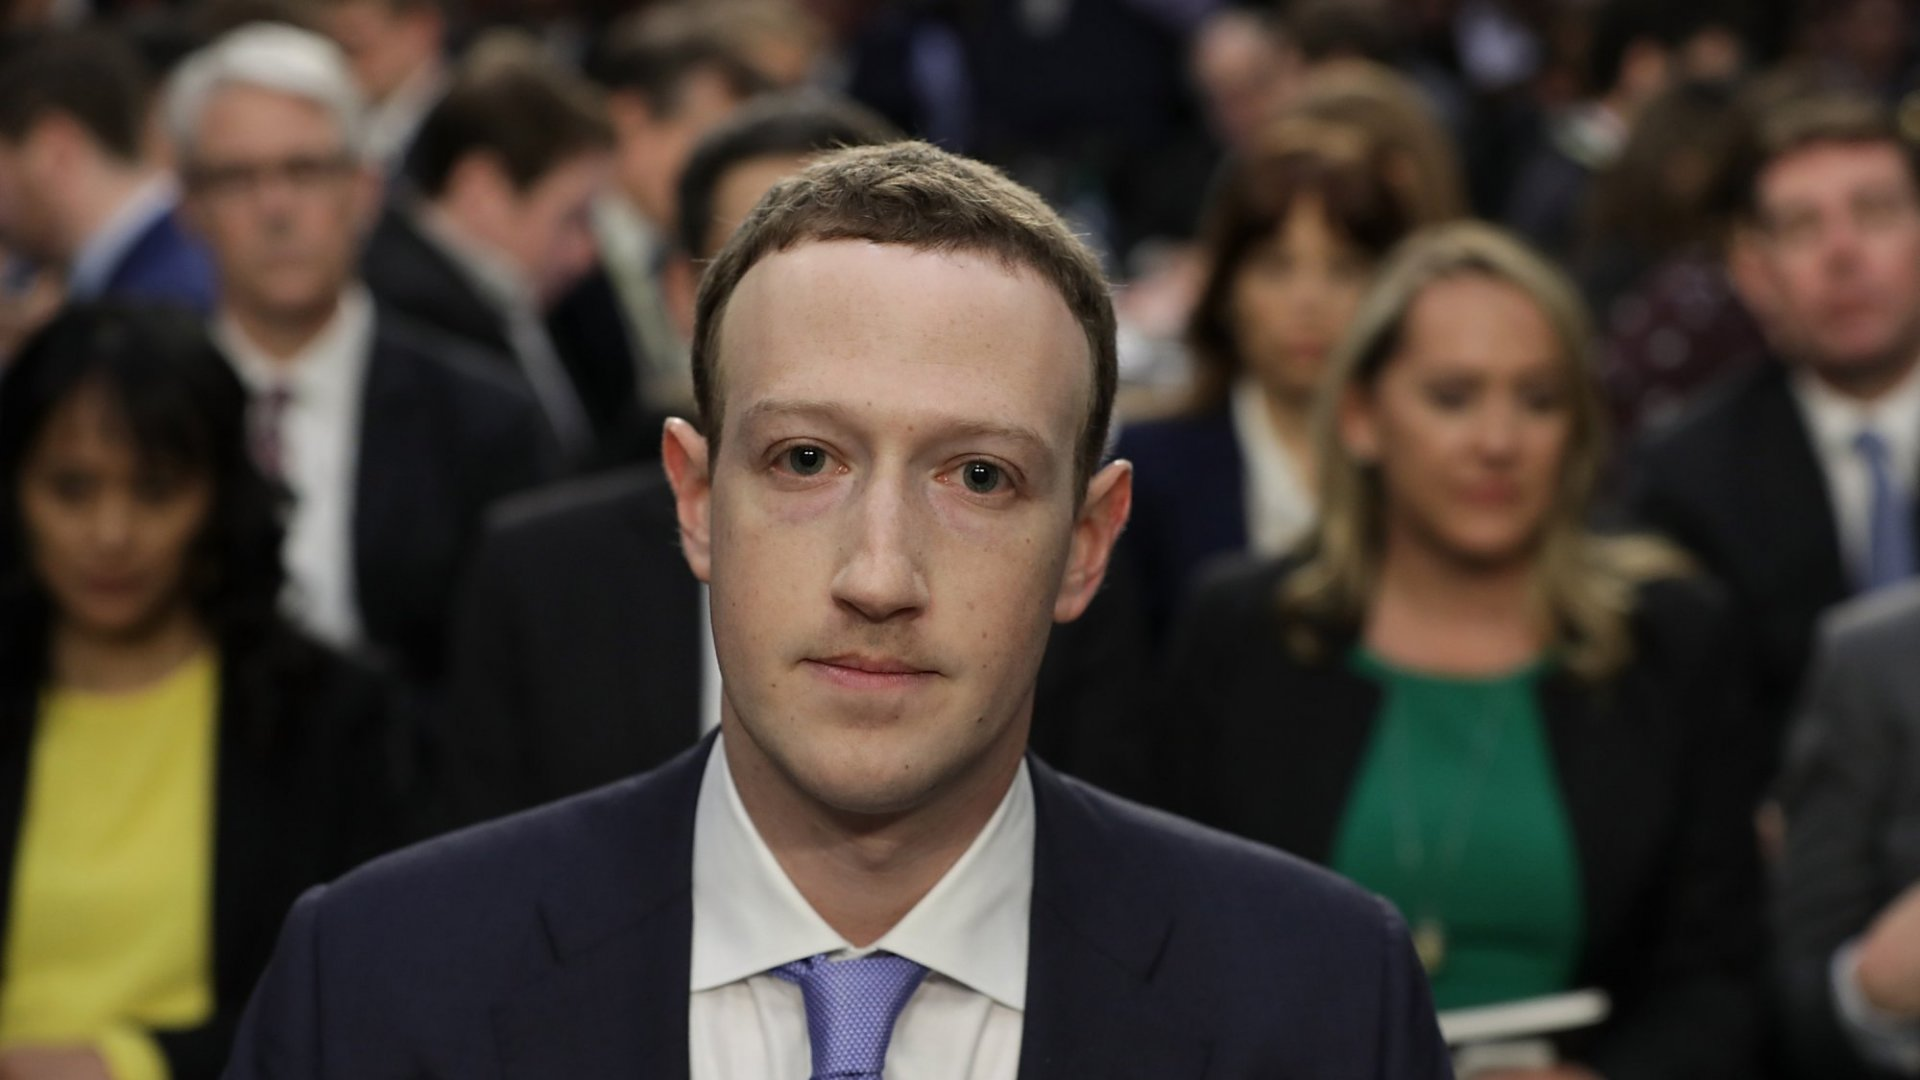 Congress Thinks Mark Zuckerberg Didn't Do Enough to Address Small Businesses During His Testimony